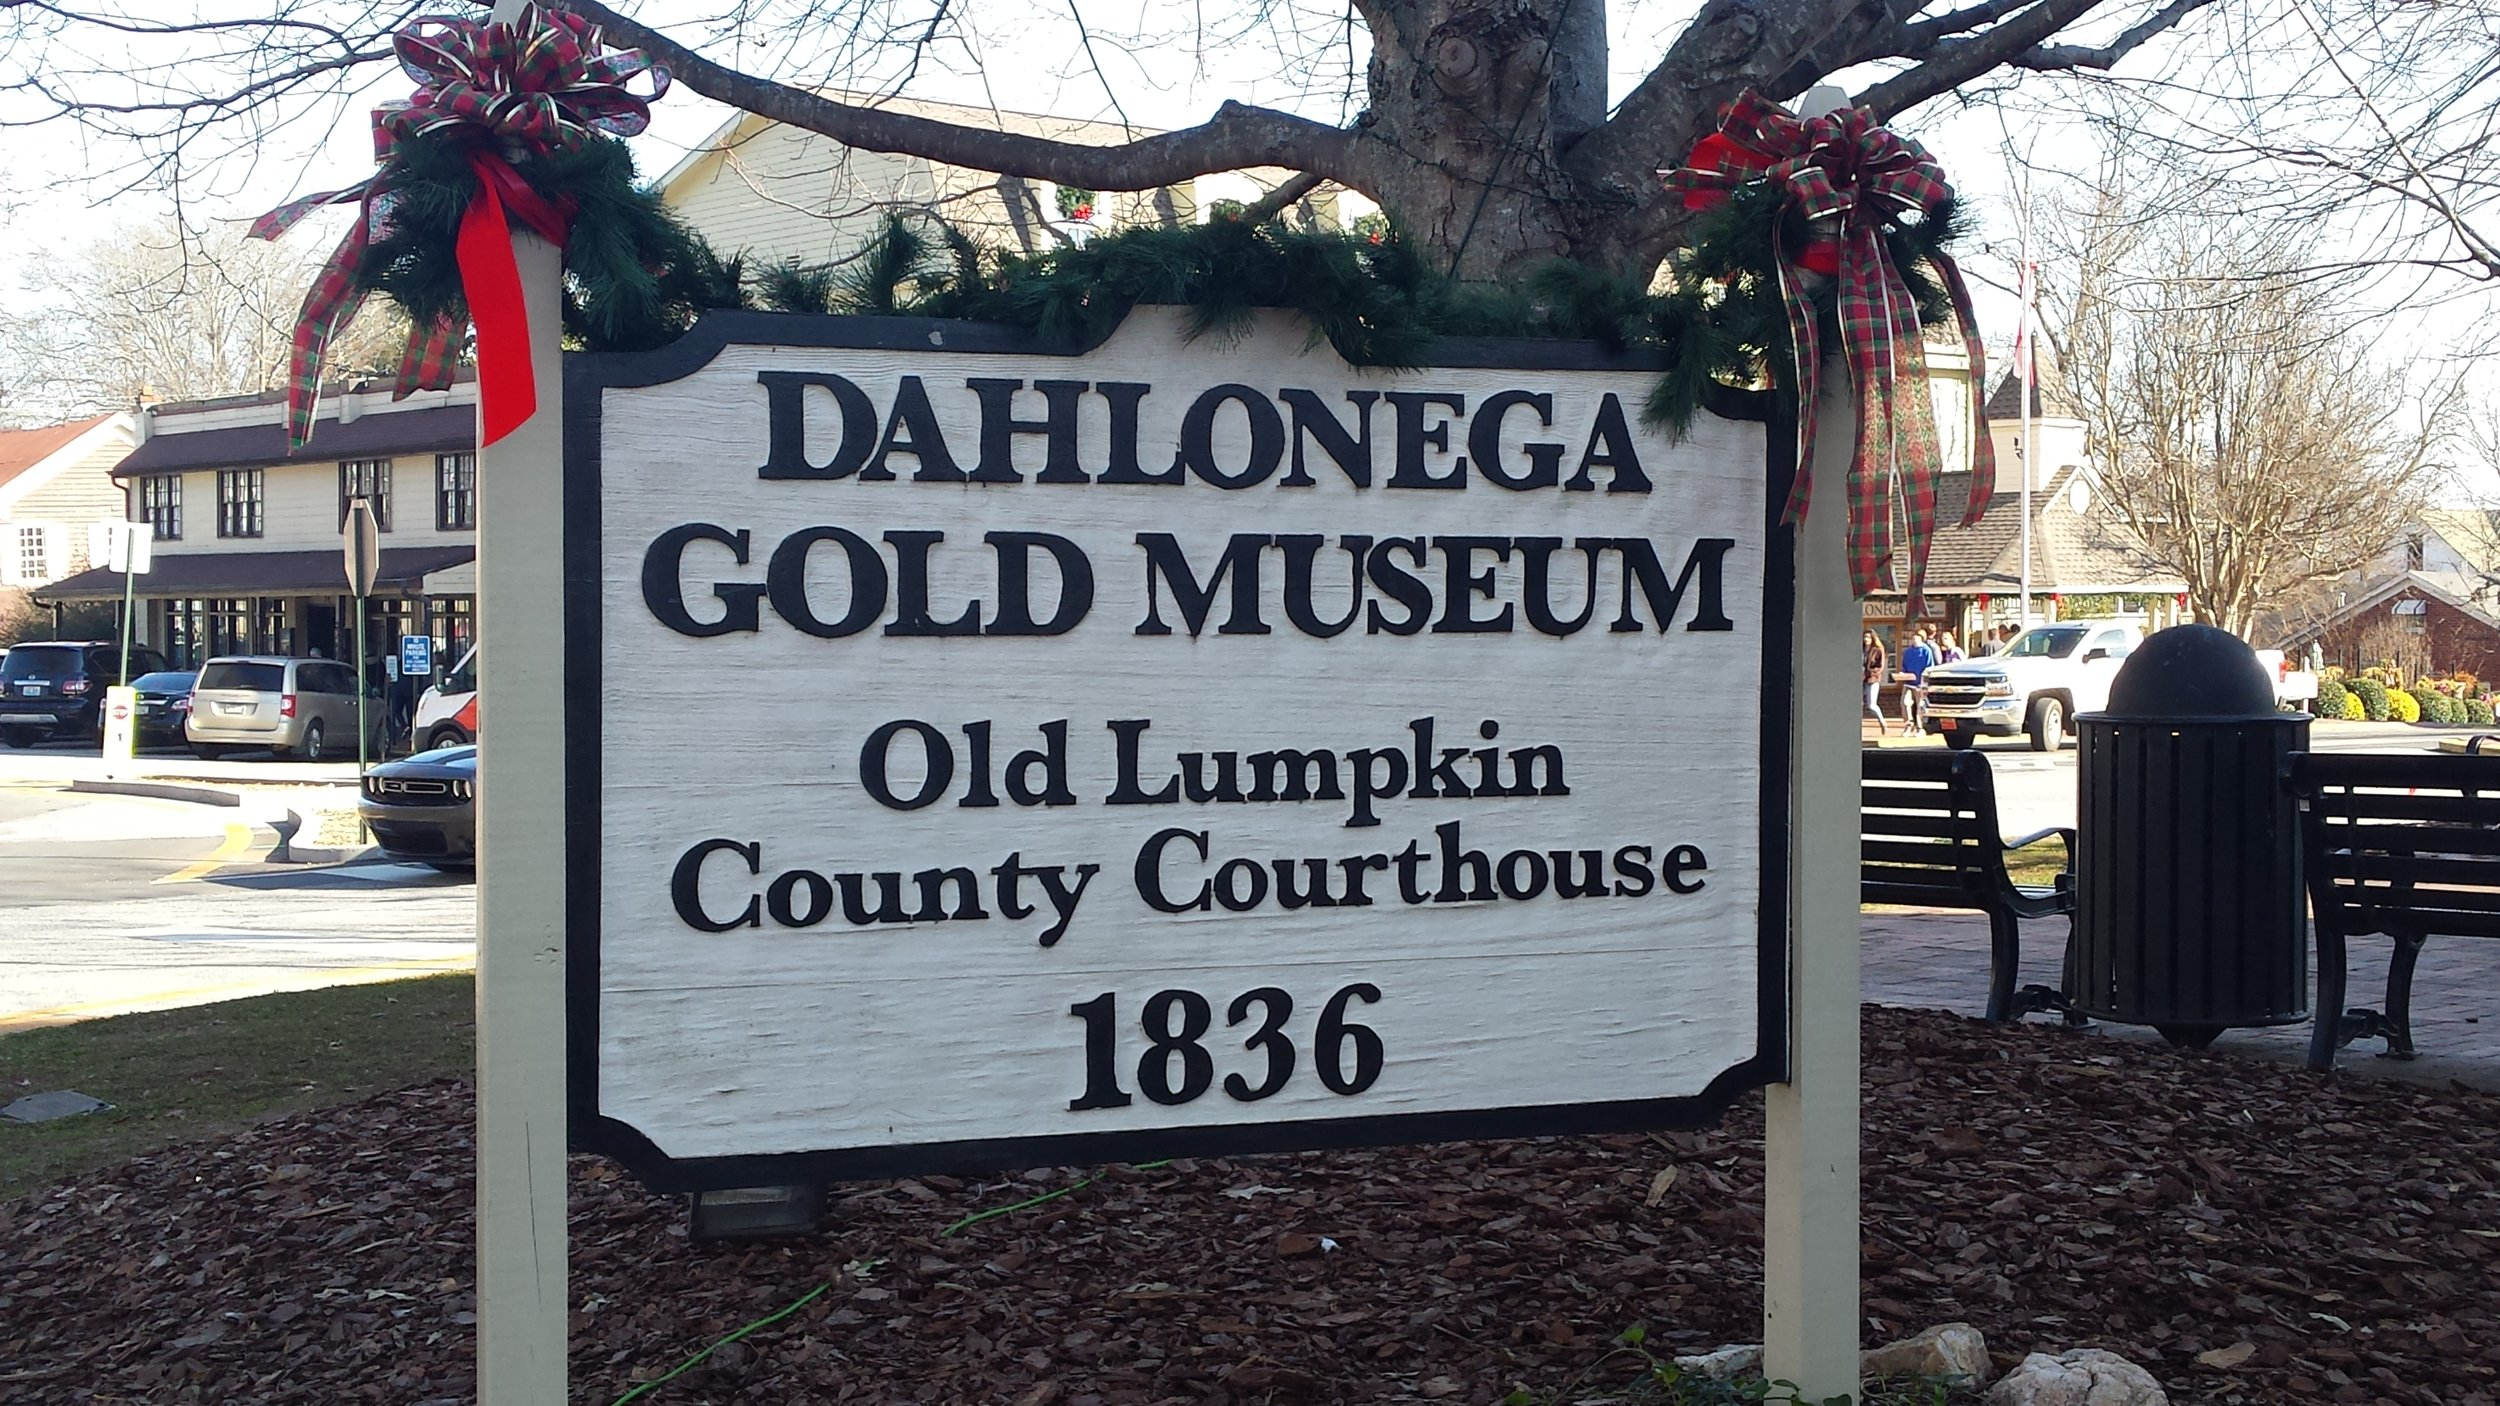 The center of Dahlonega town square features the Gold Museum.